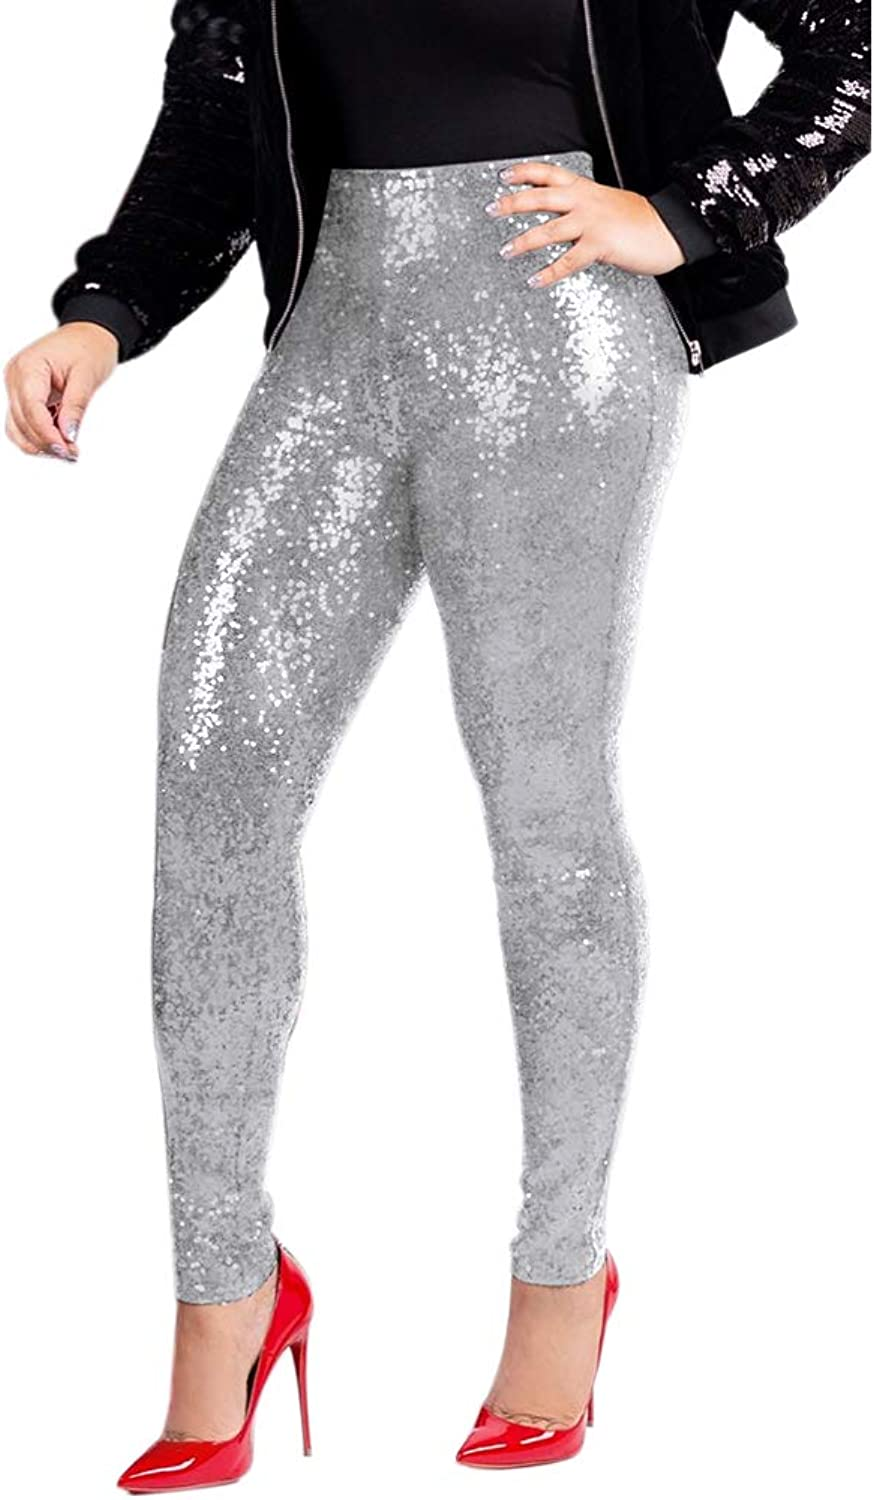 Allumk Women's Sequins Pants High Waisted Solid Shiny Leggings Skinny Long Trousers